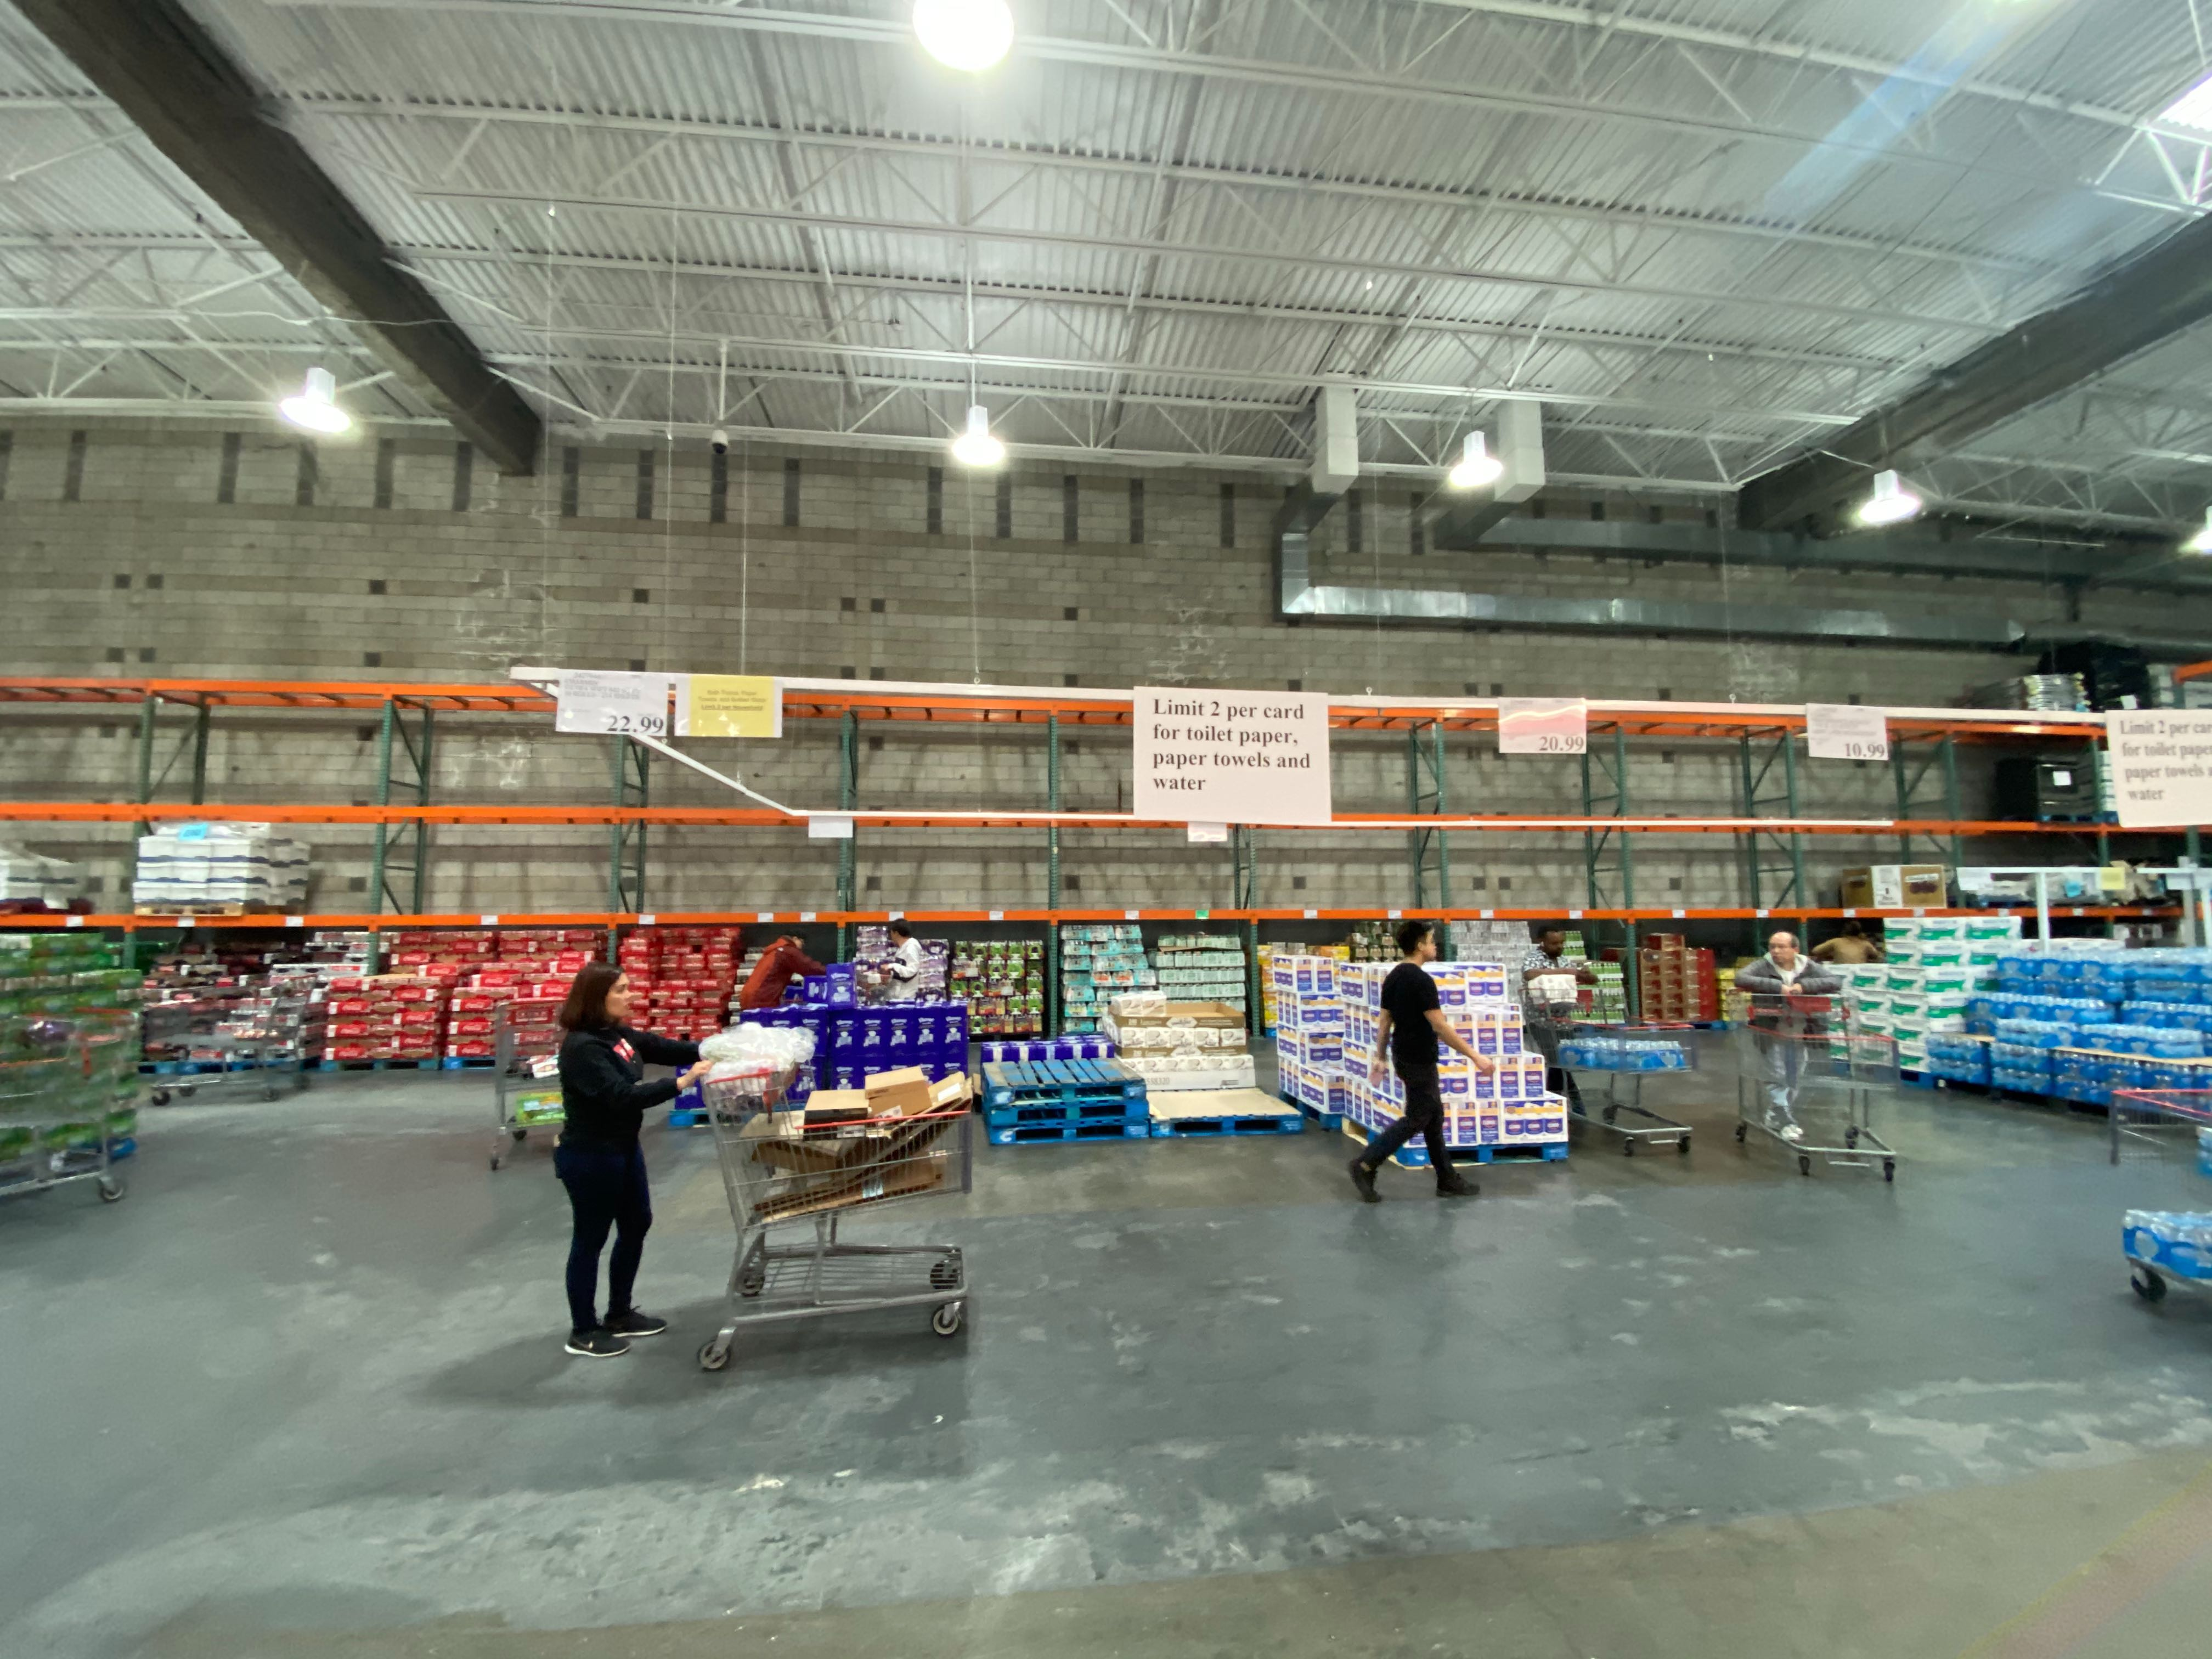 This week's top stories in supply chain and logistics: Costco rides #CostcoPanicBuying wave, ISM national factory activity index falls to 50.1 for February, Blank sailings to cost Ocean Carriers an estimated $1.9 billion, Instacart launches new delivery option, and Lobster prices fall to 4-year low thanks to COVID-19.